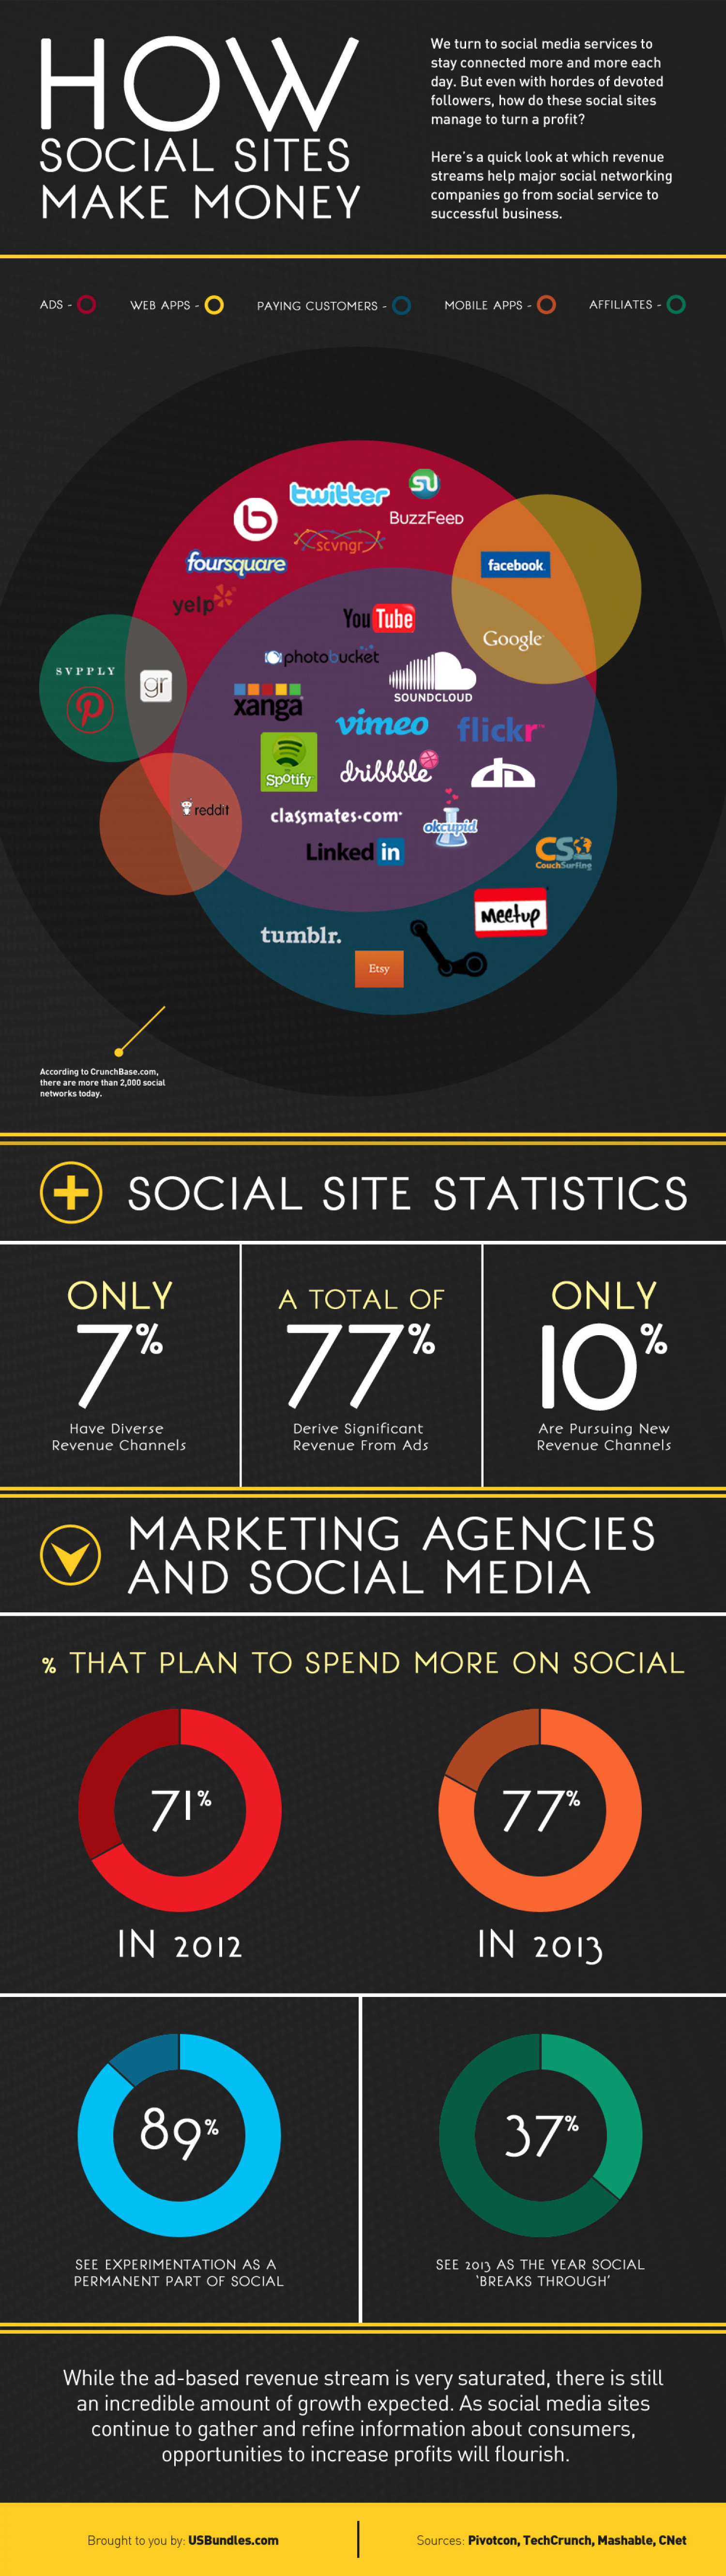 How Social Sites Make Money Infographic